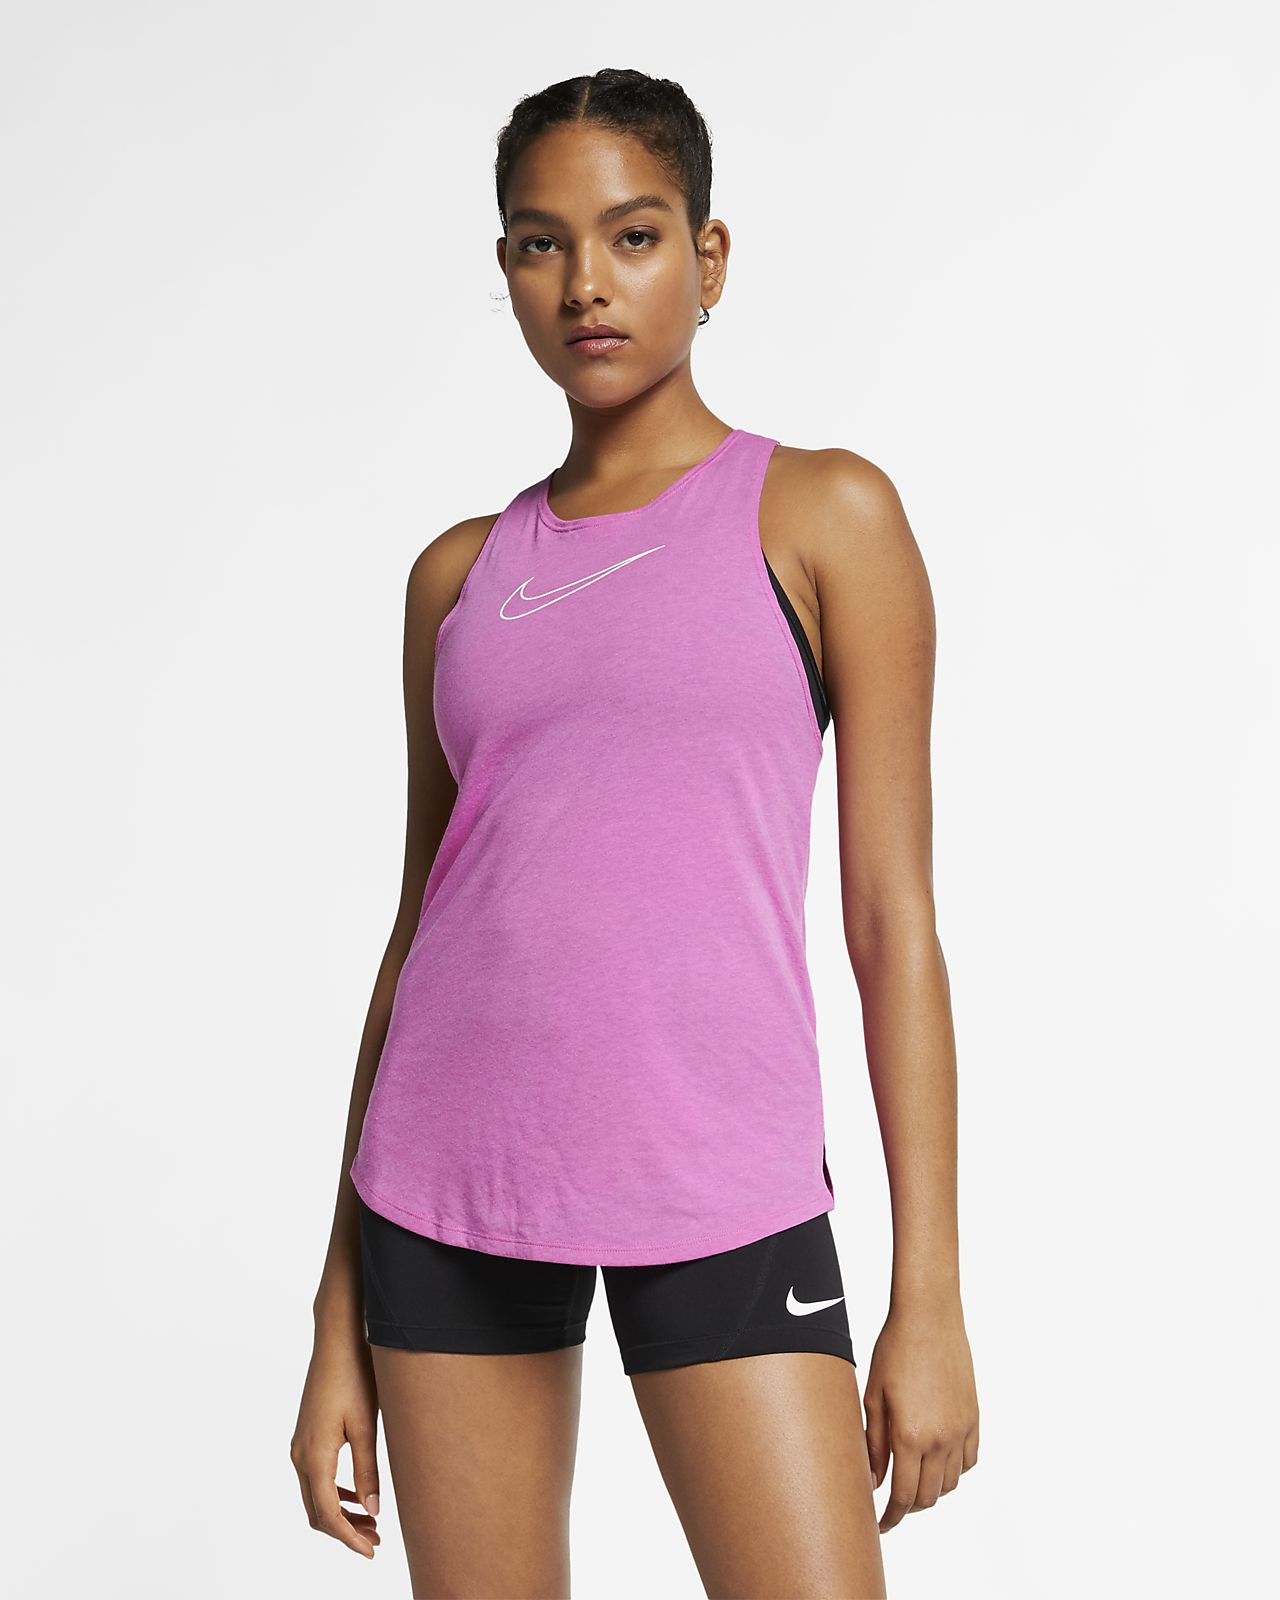 Nike Women's Training Tank